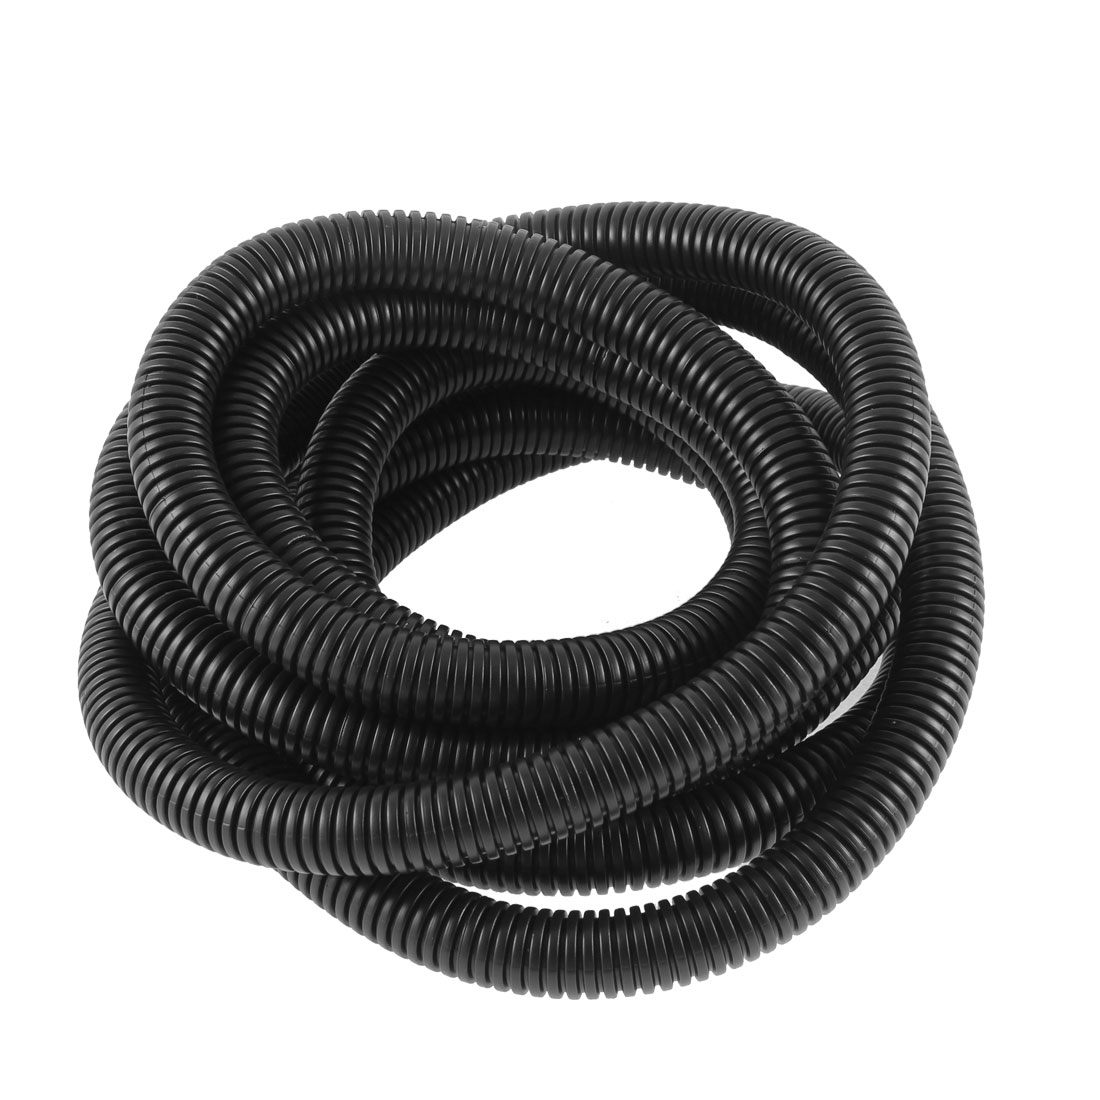 2.6M 8.5ft Long 18.5mmx14.5mm Black PVC Flexible Corrugated Tubing Wire Cable Conduit Hose Pipe